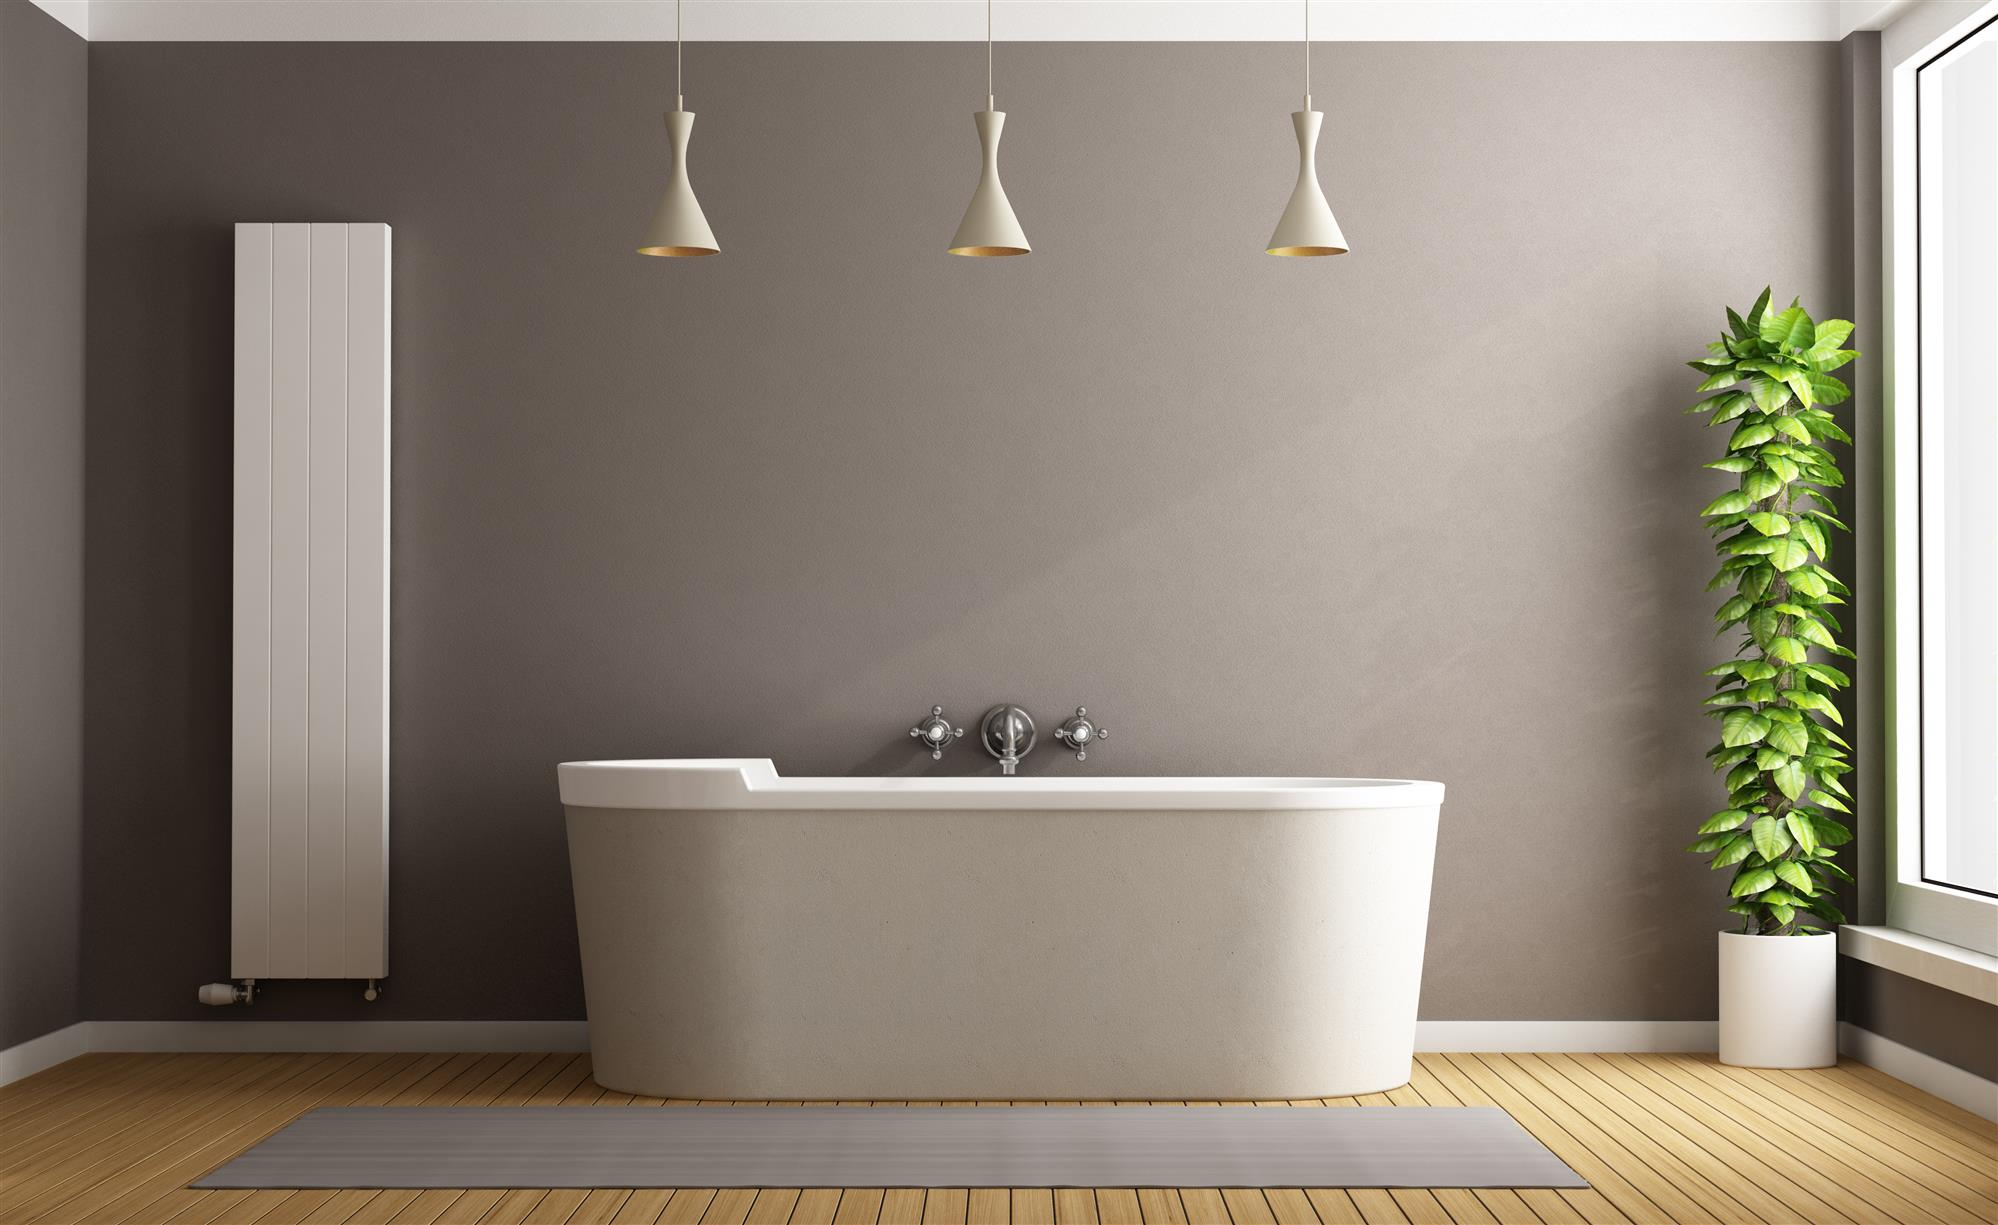 Bathtub with lights and simple decor